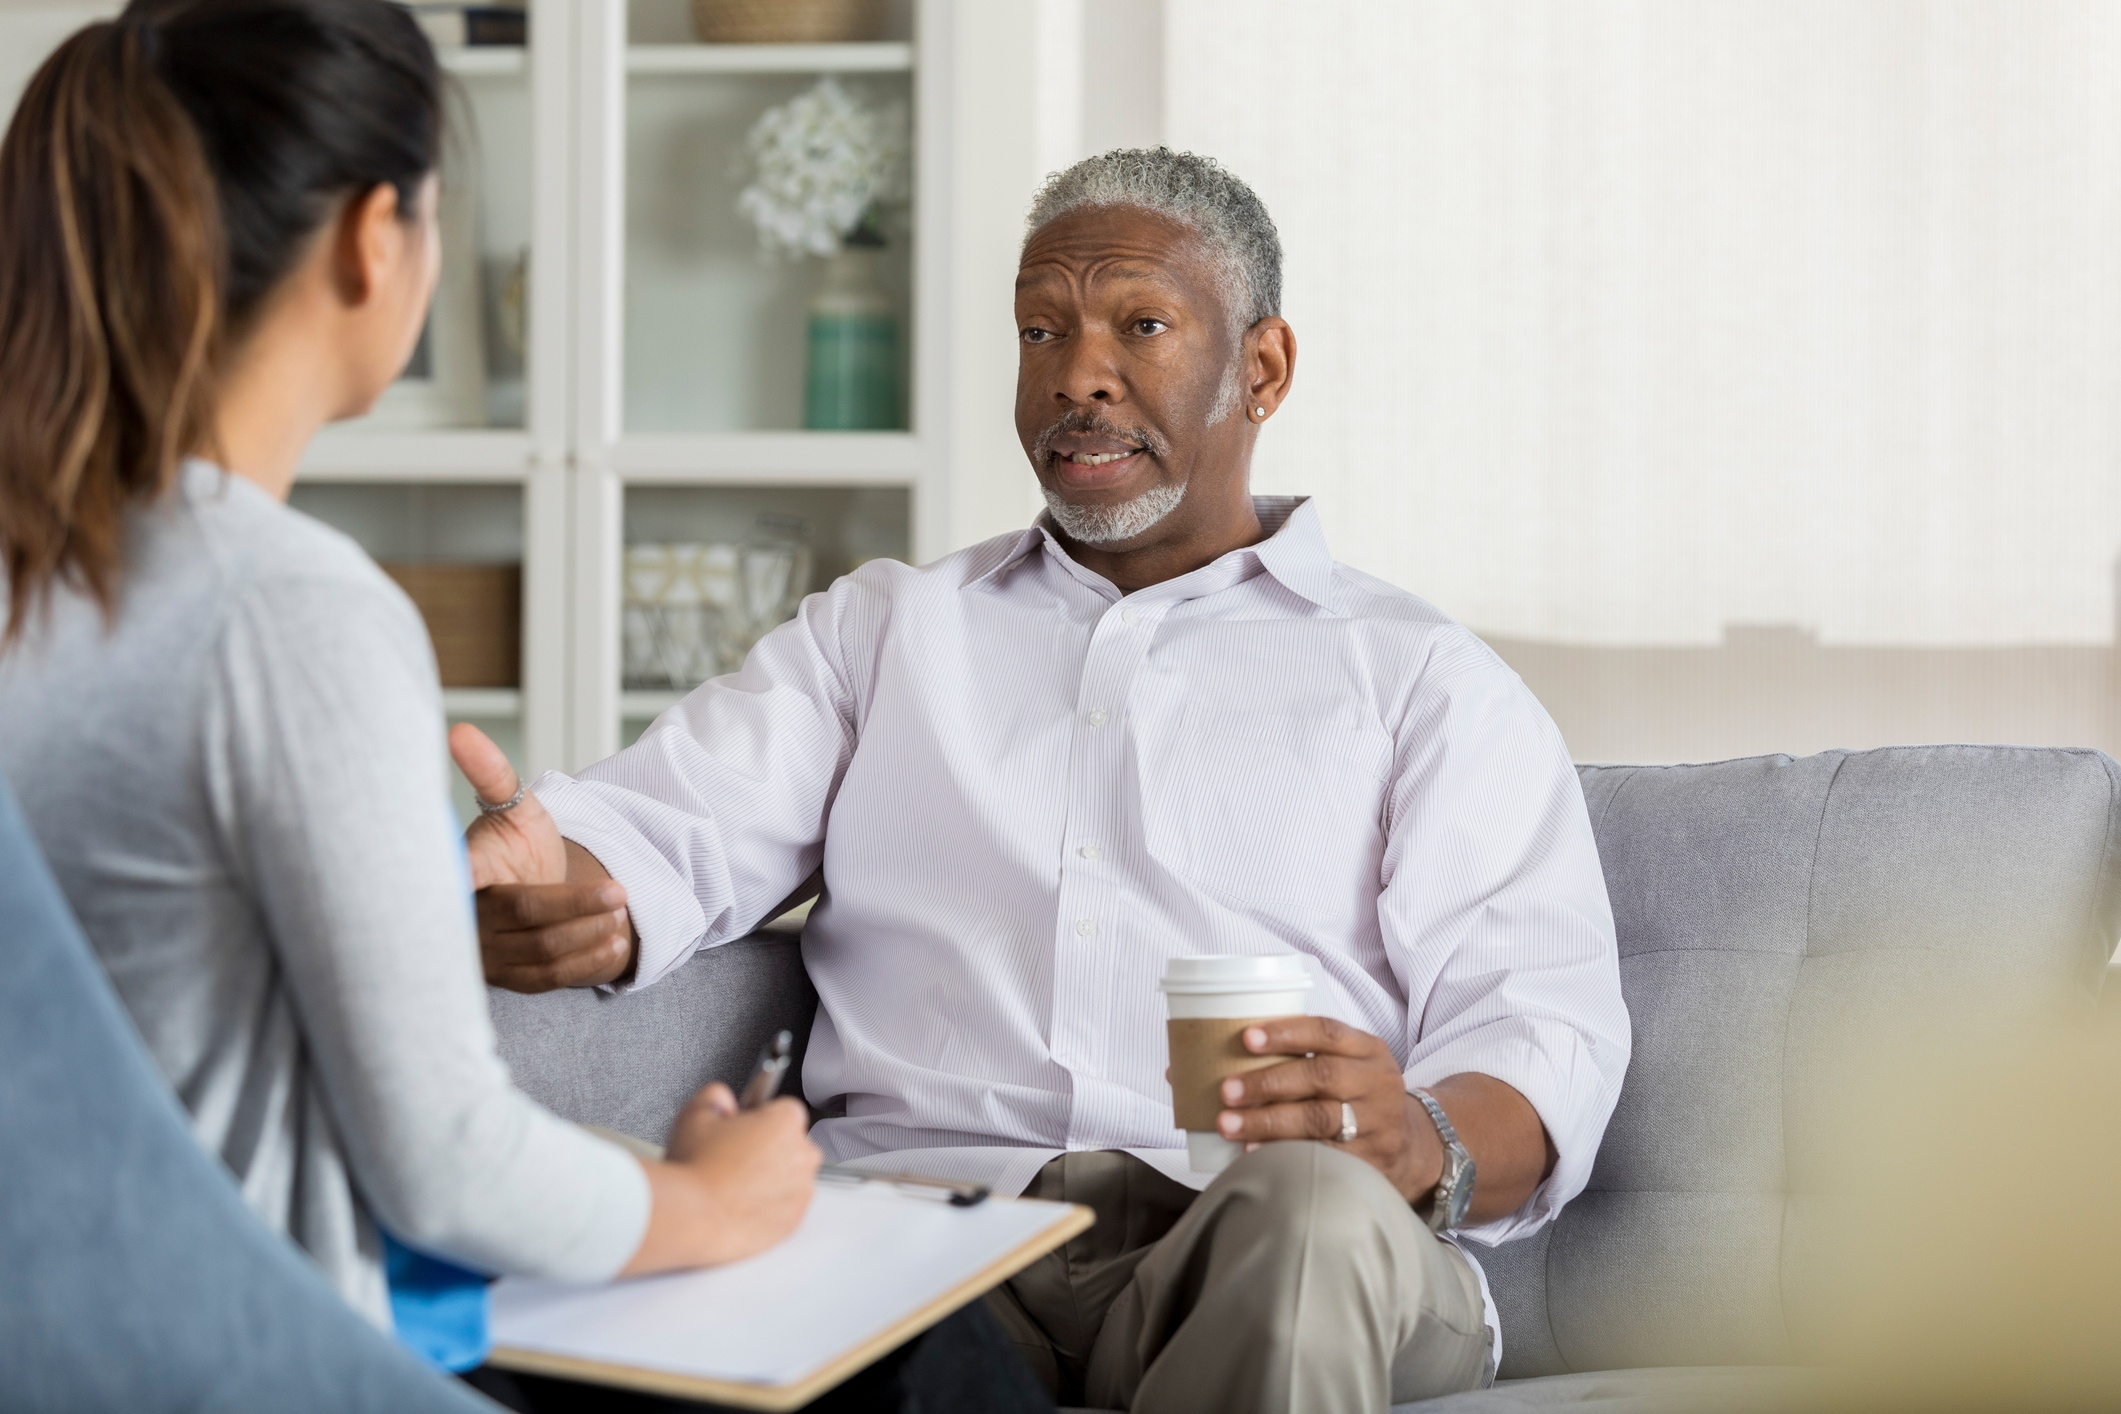 A man in his 60's talking to his doctor